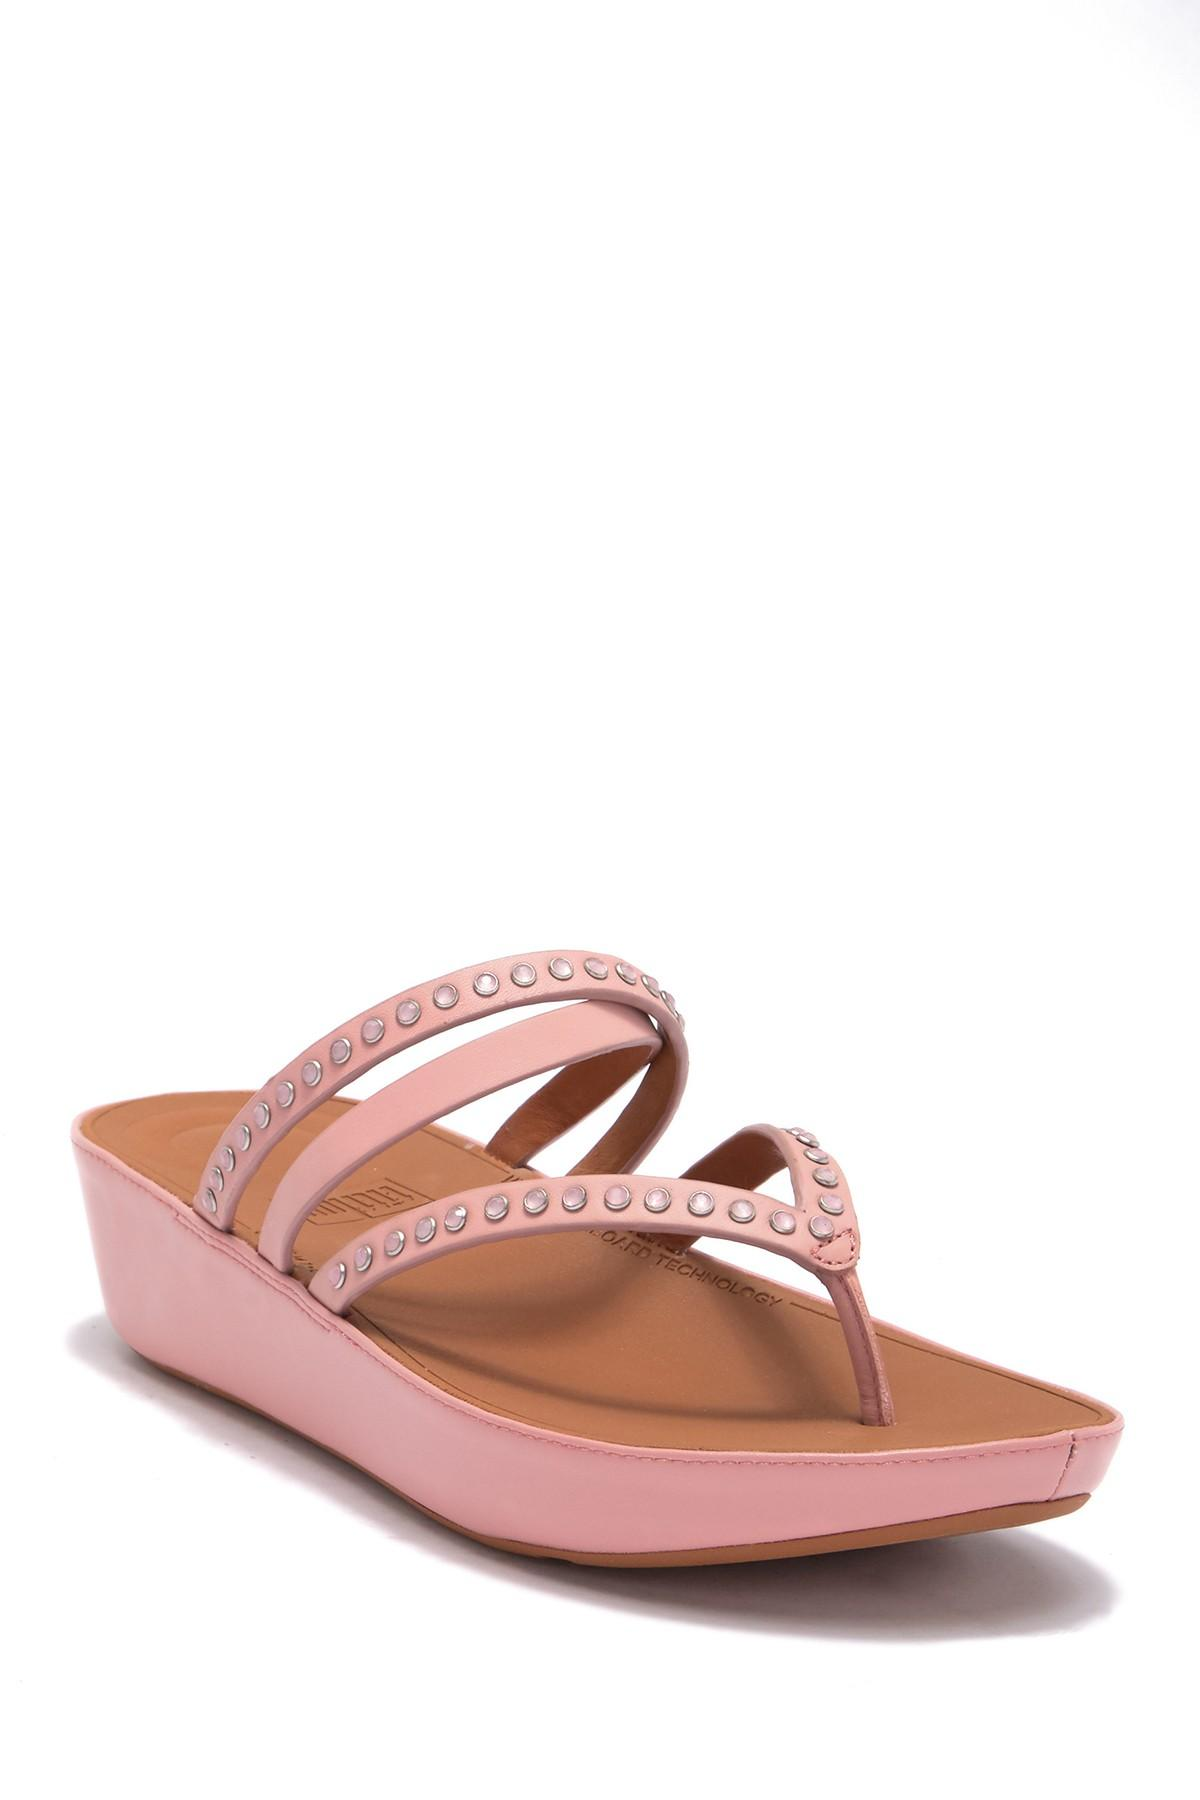 0af66fef6862 Lyst - Fitflop Linny Crisscross Wedge Thong Sandal in Pink